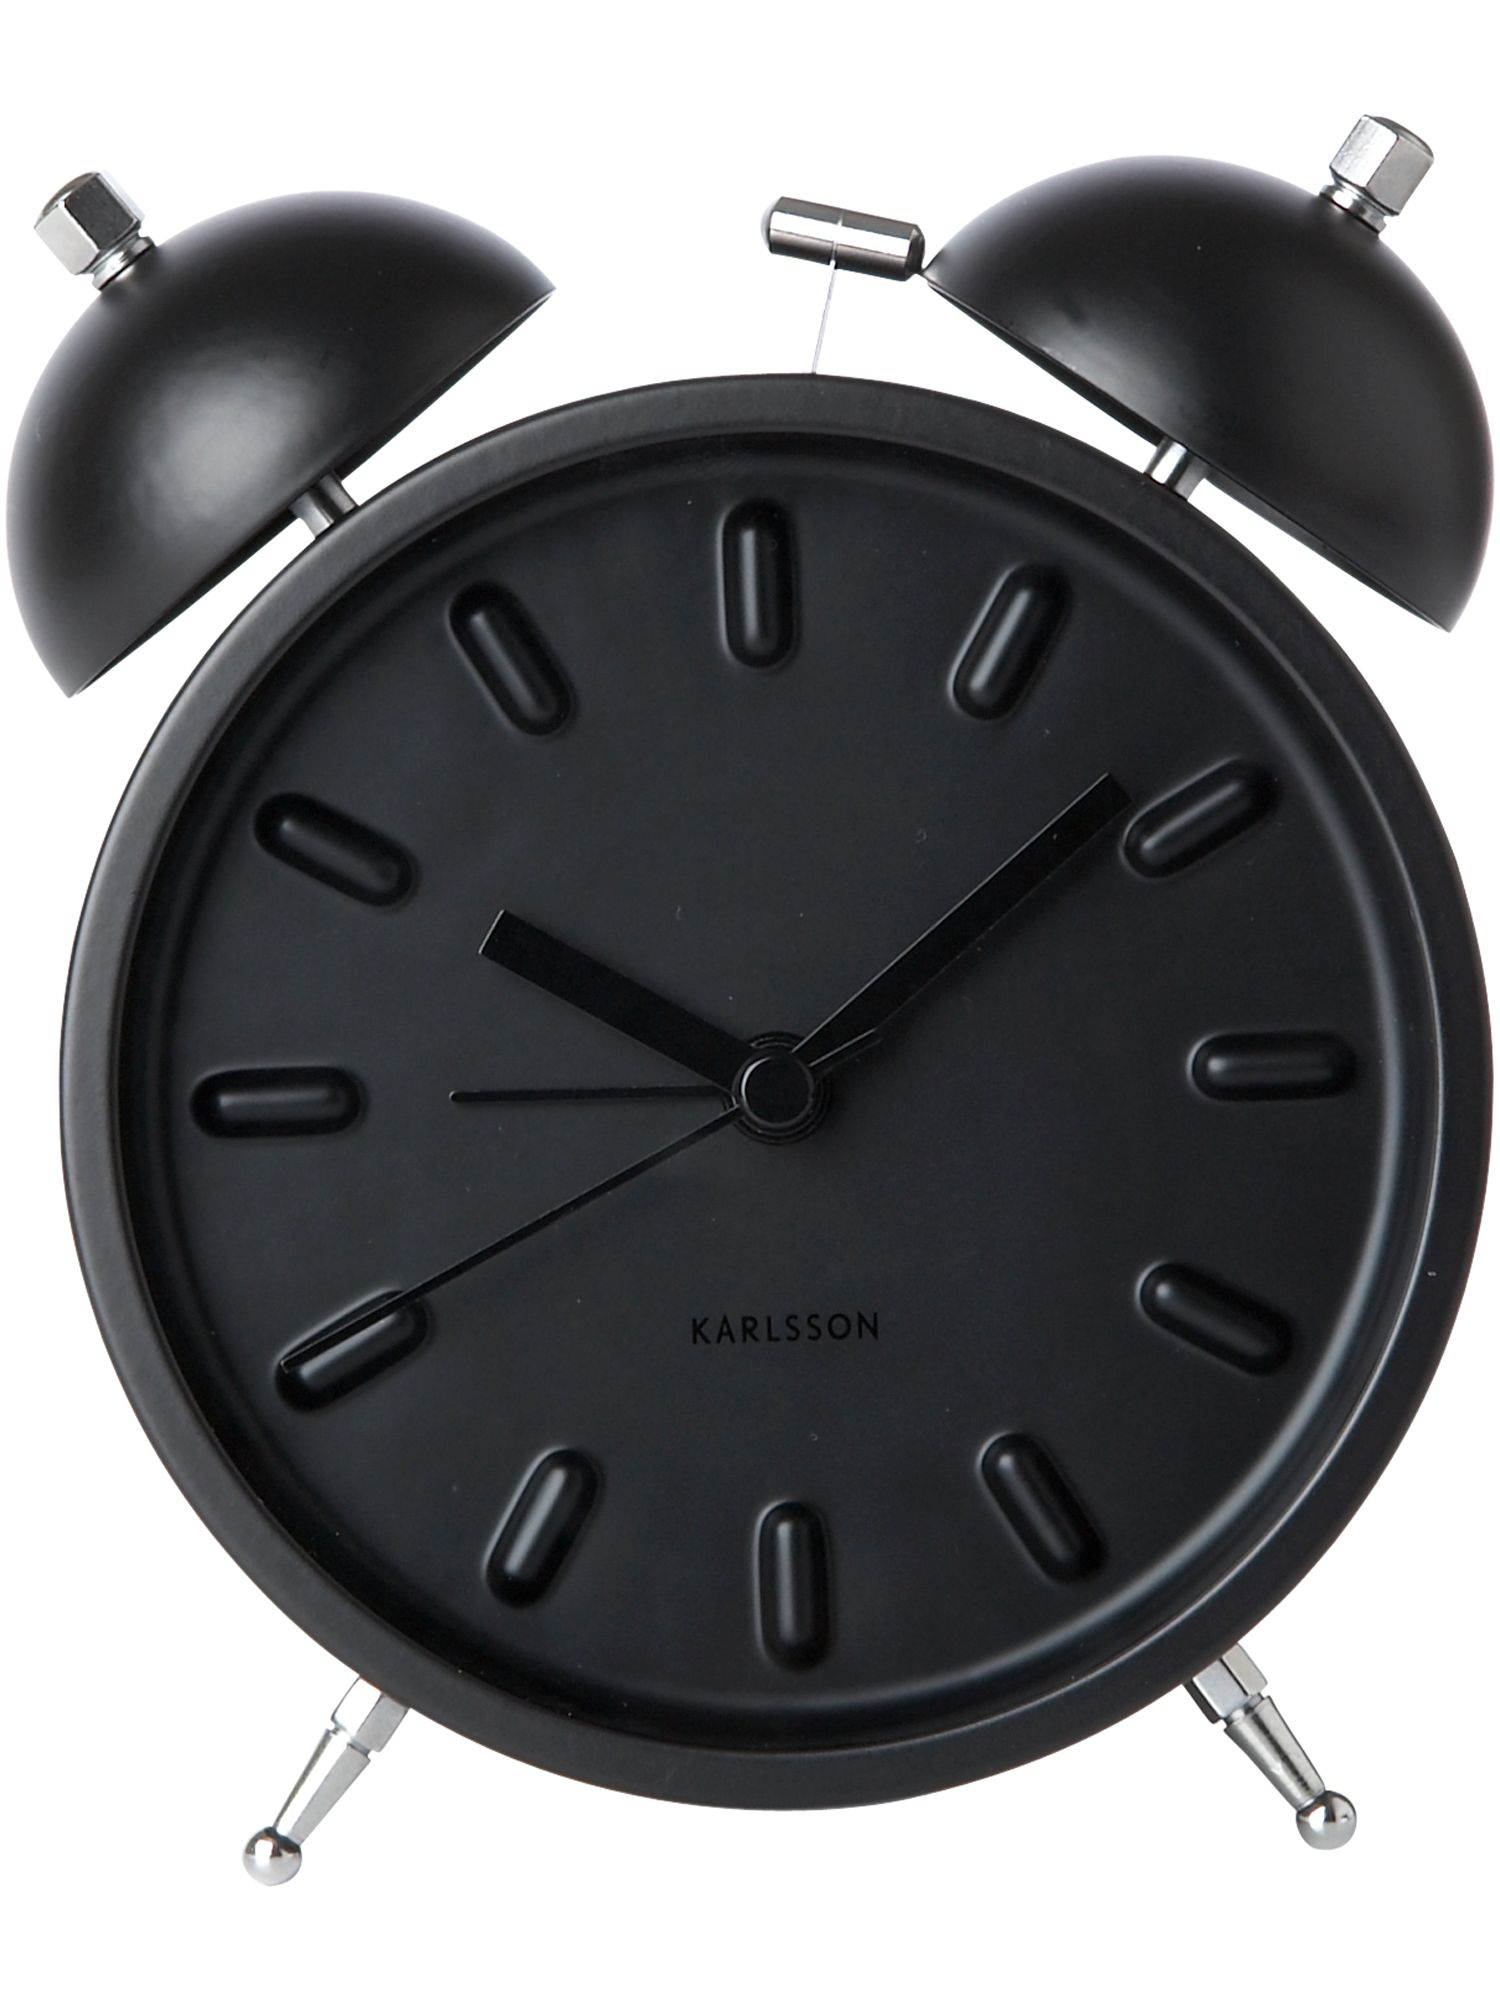 Nude alarm clock, black